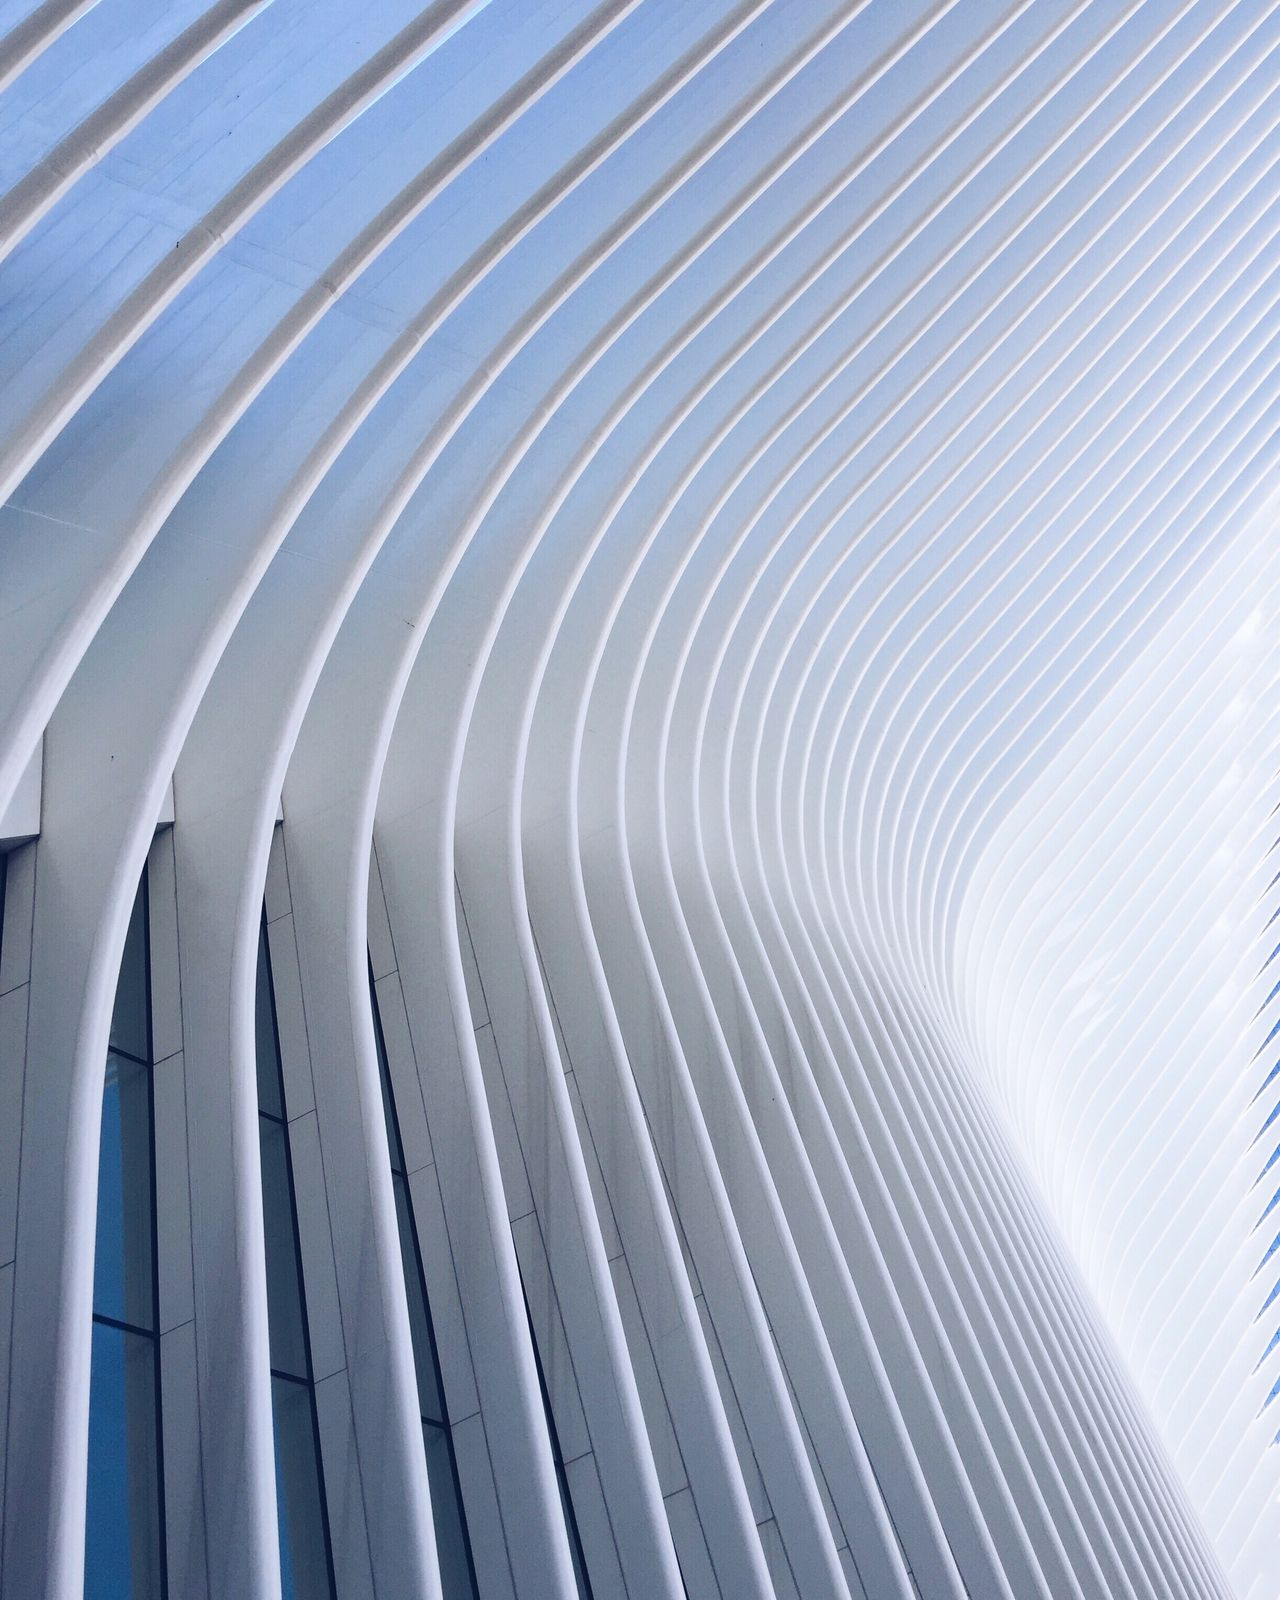 Oculus Backgrounds Pattern Architecture Architecture_collection No People Architectural Detail Modern Architecture Calatrava EyeEm Travel Destinations EyeEm Gallery City New York City Check This Out The Architect - 2017 EyeEm Awards New York OpenEdit EyeEm Best Shots Architectural Feature Architecturelovers